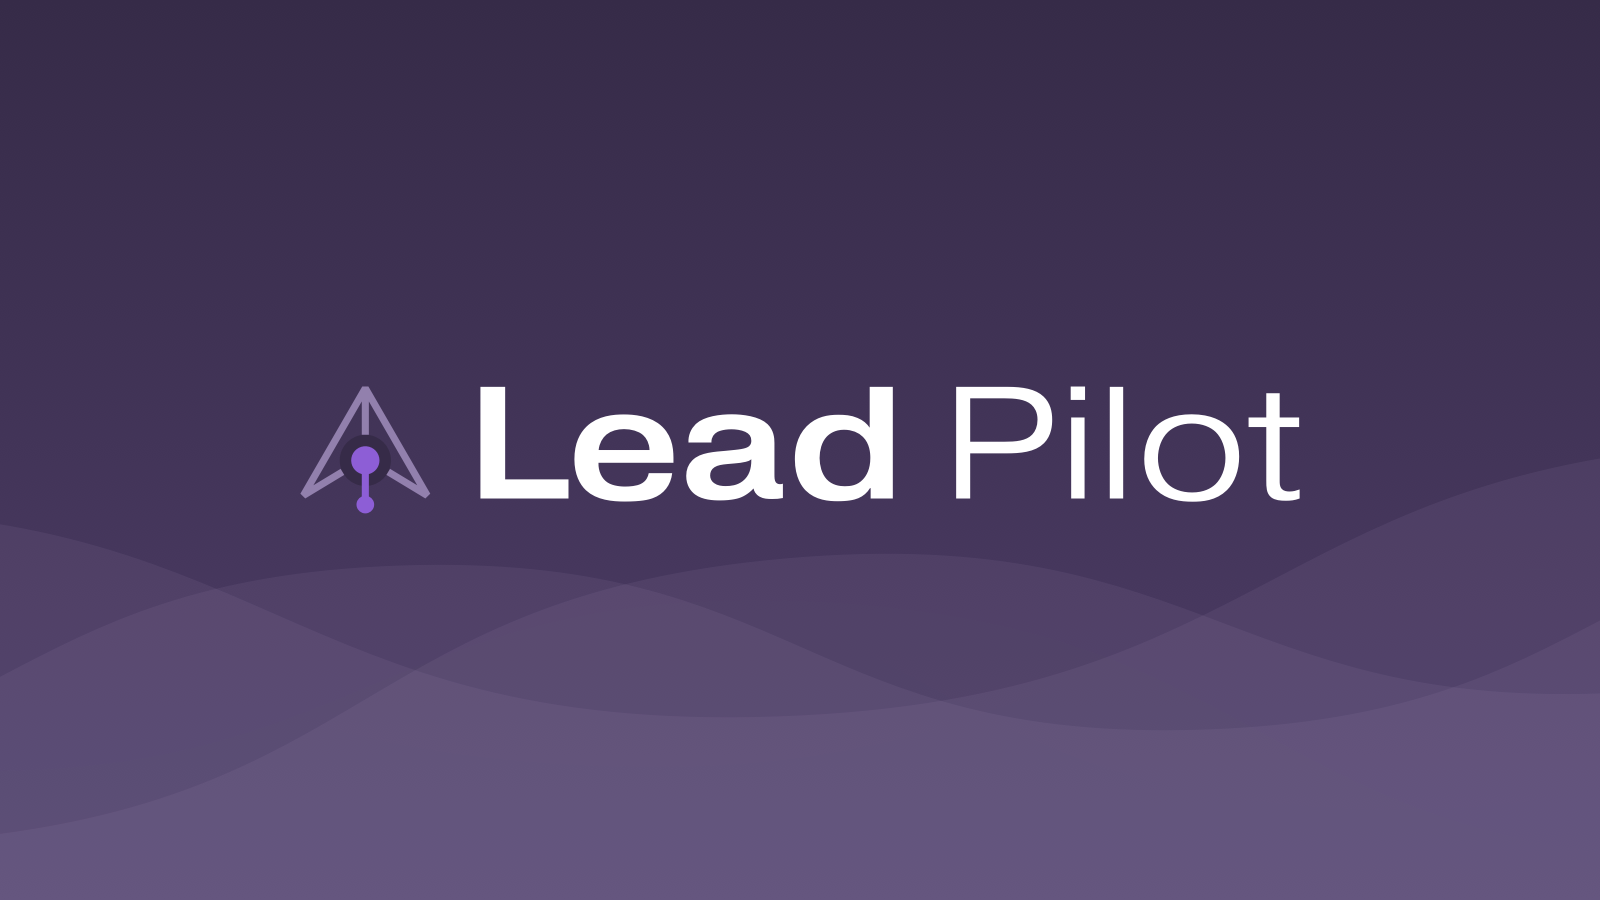 Twenty Over Ten Launches Lead Pilot, the First Inbound Marketing Solution for Financial Advisors Featured Image